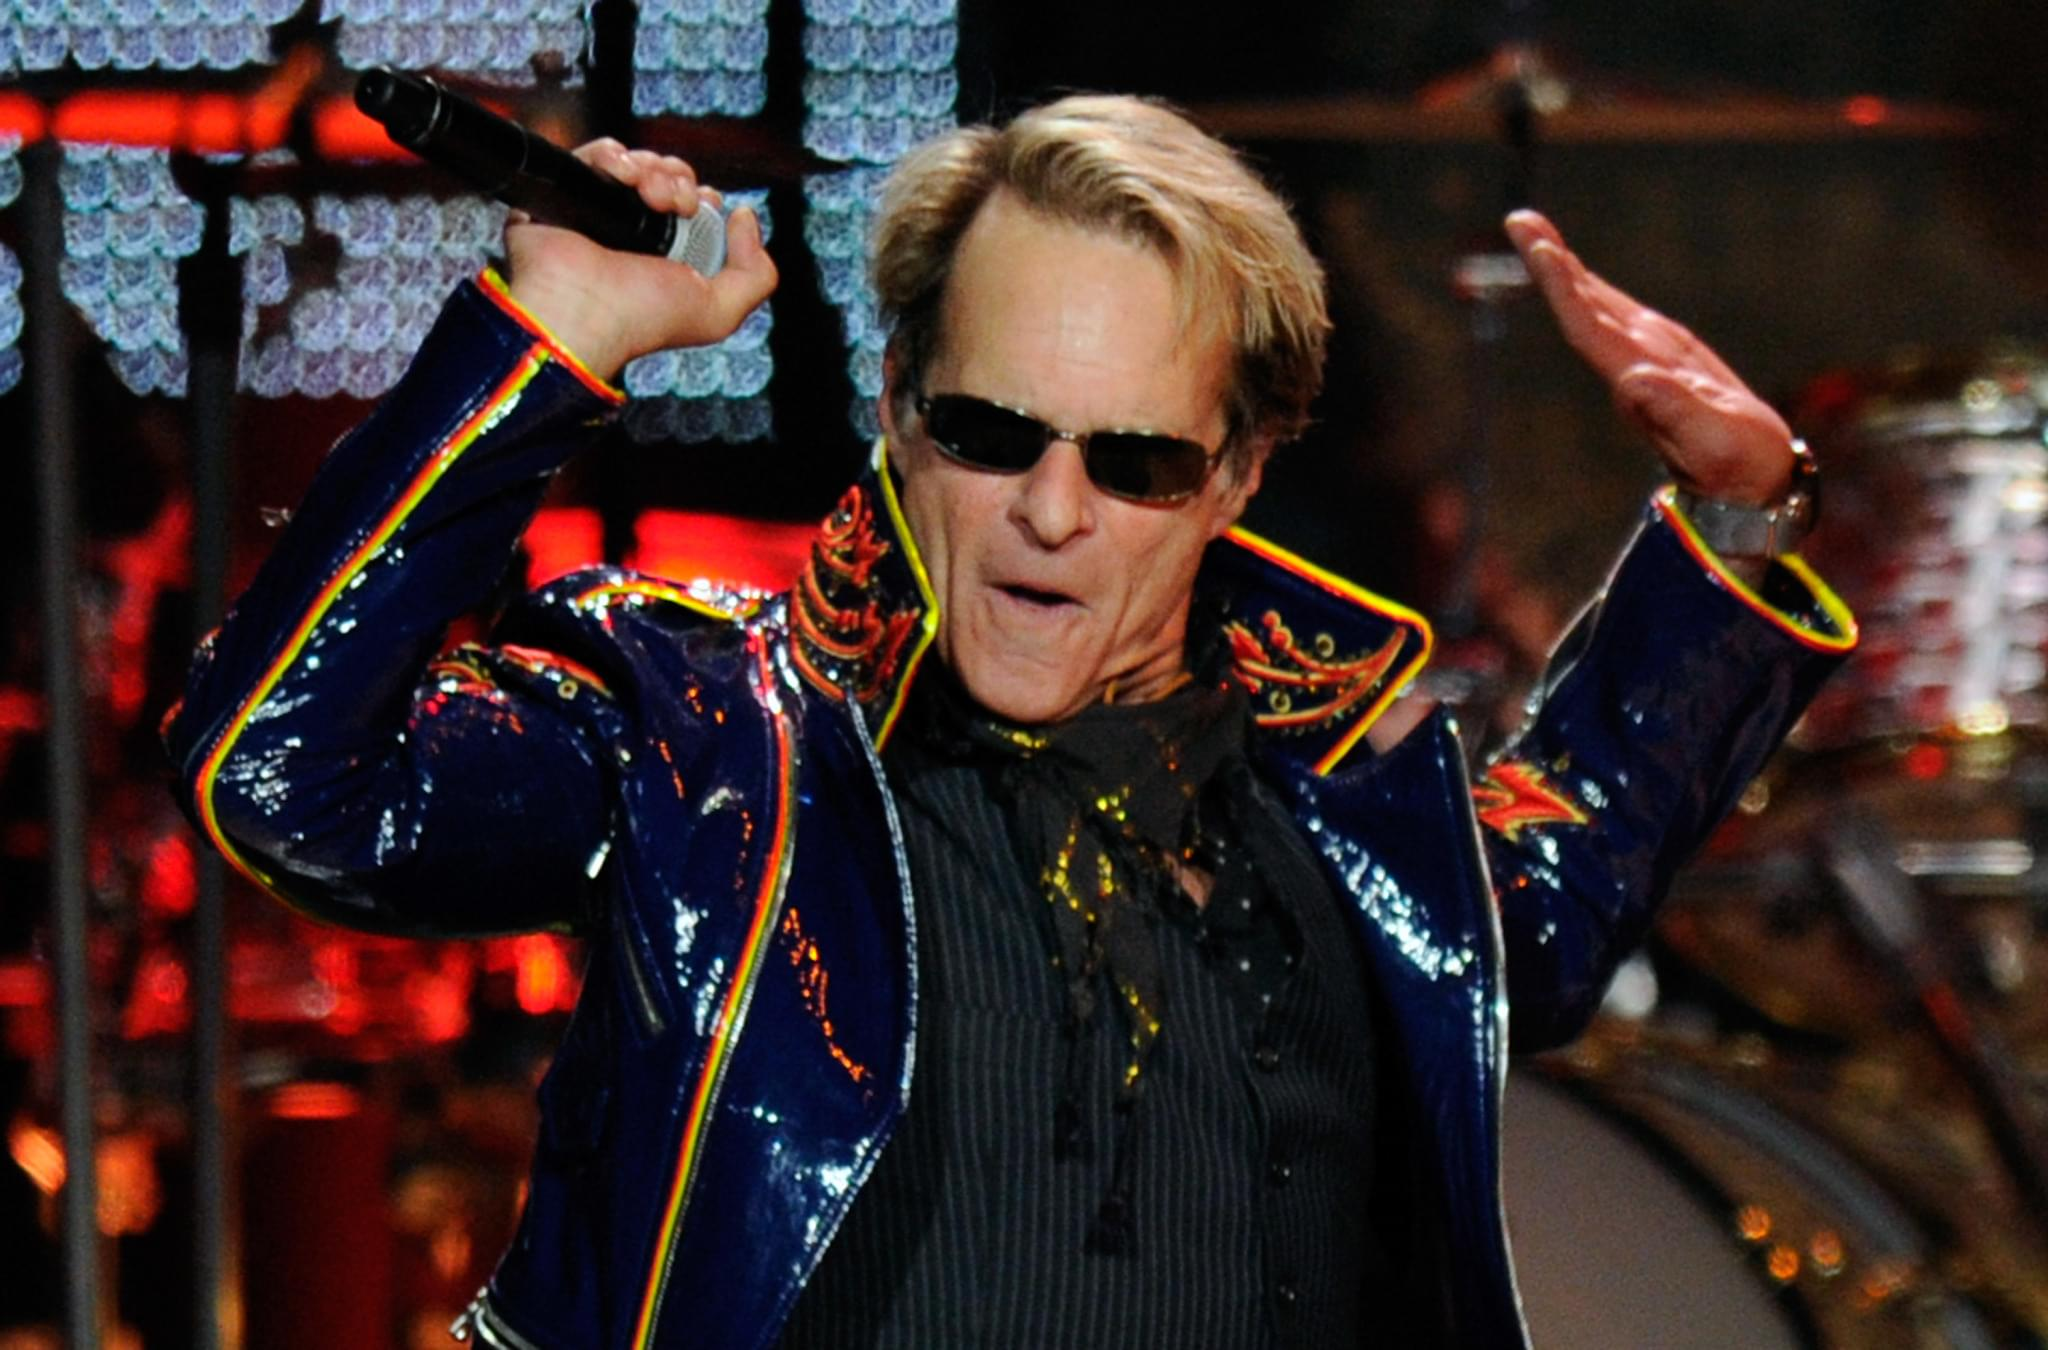 INTERVIEW: DAVID LEE ROTH